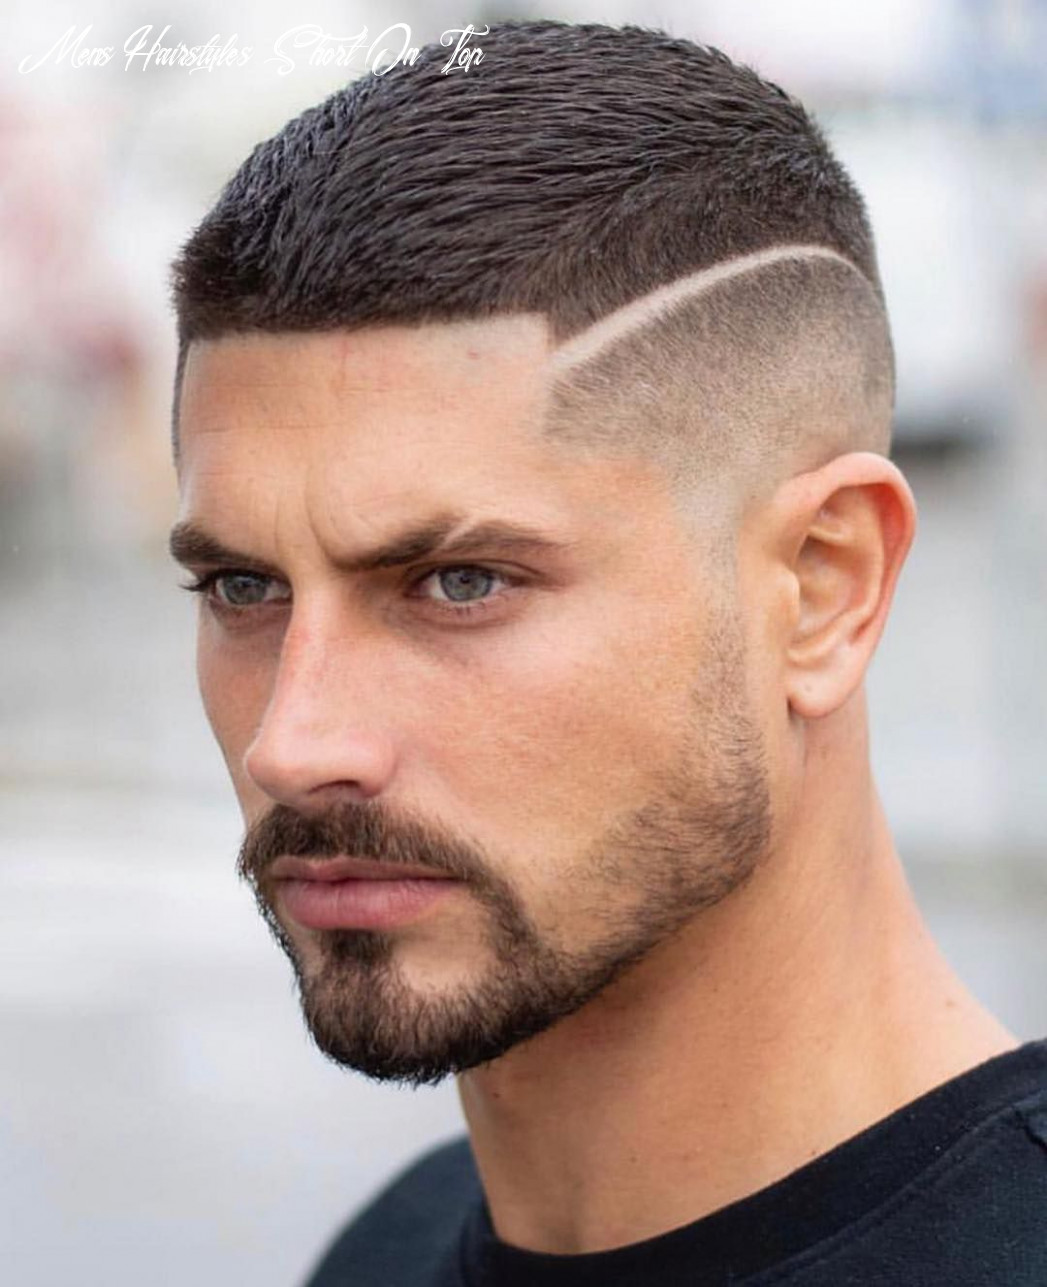 New] the 11 best hairstyles for men (in the world) | hairstyles